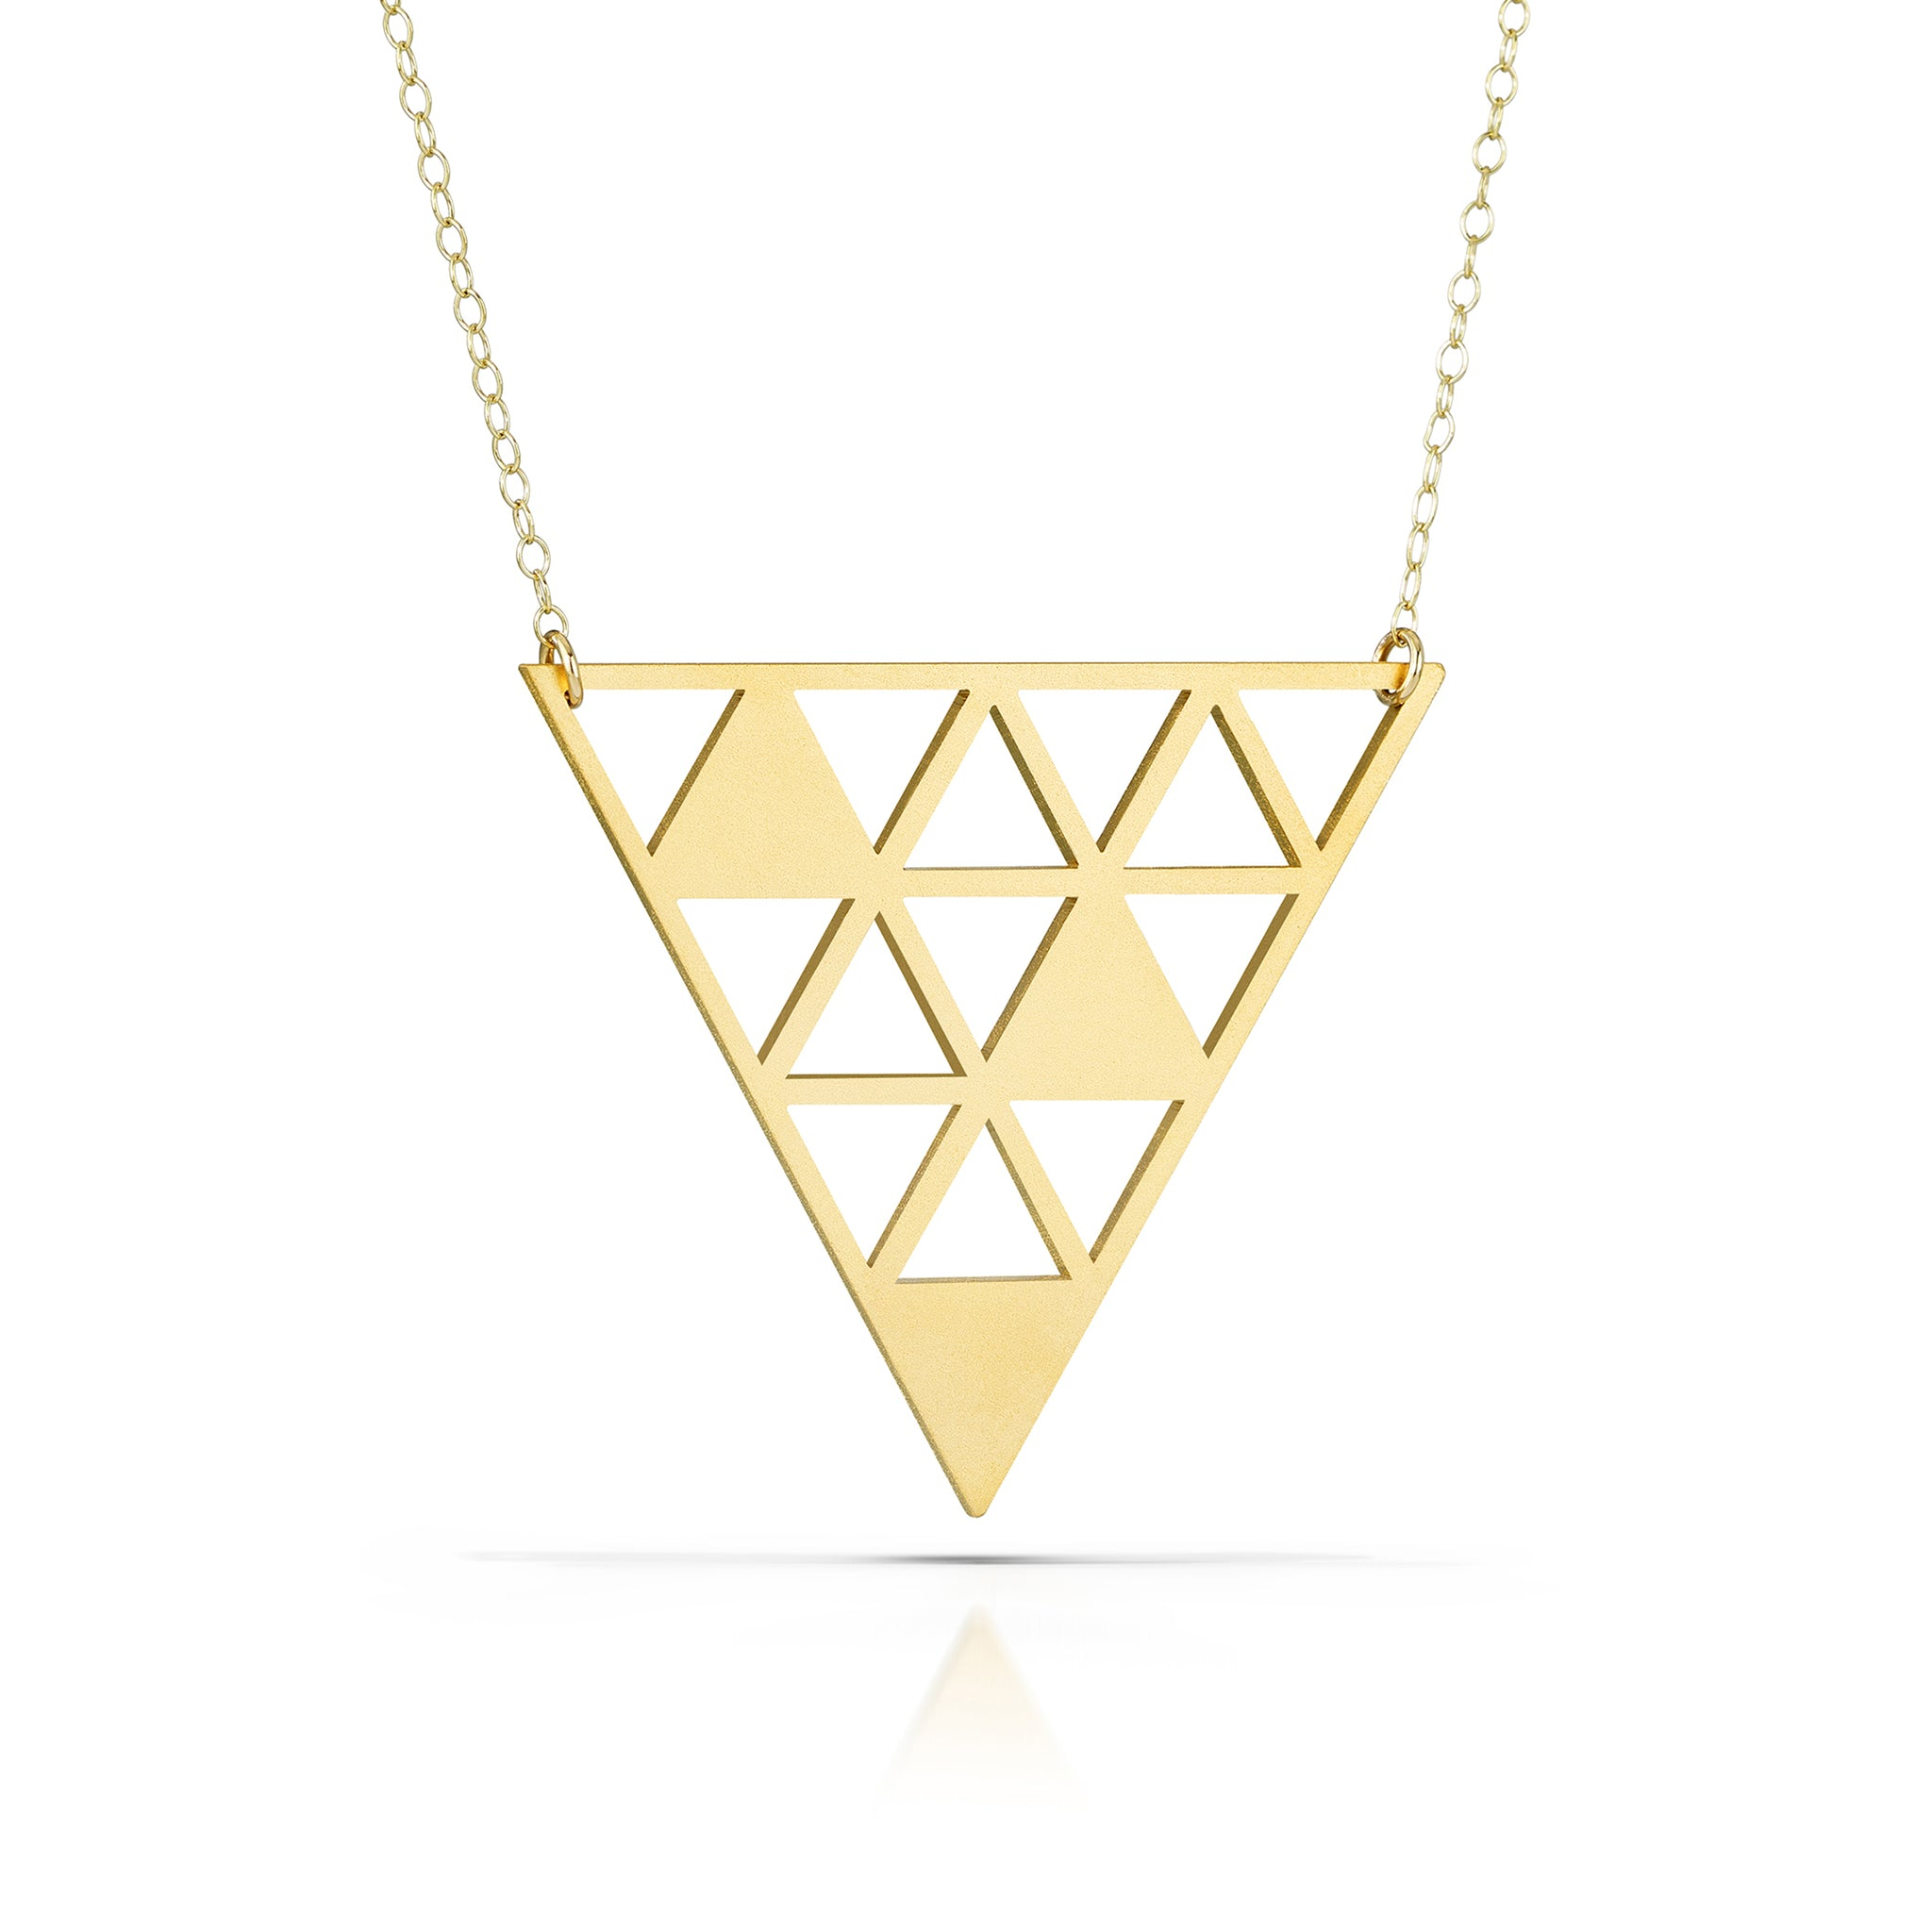 tessellate necklace, 18k gold-plated